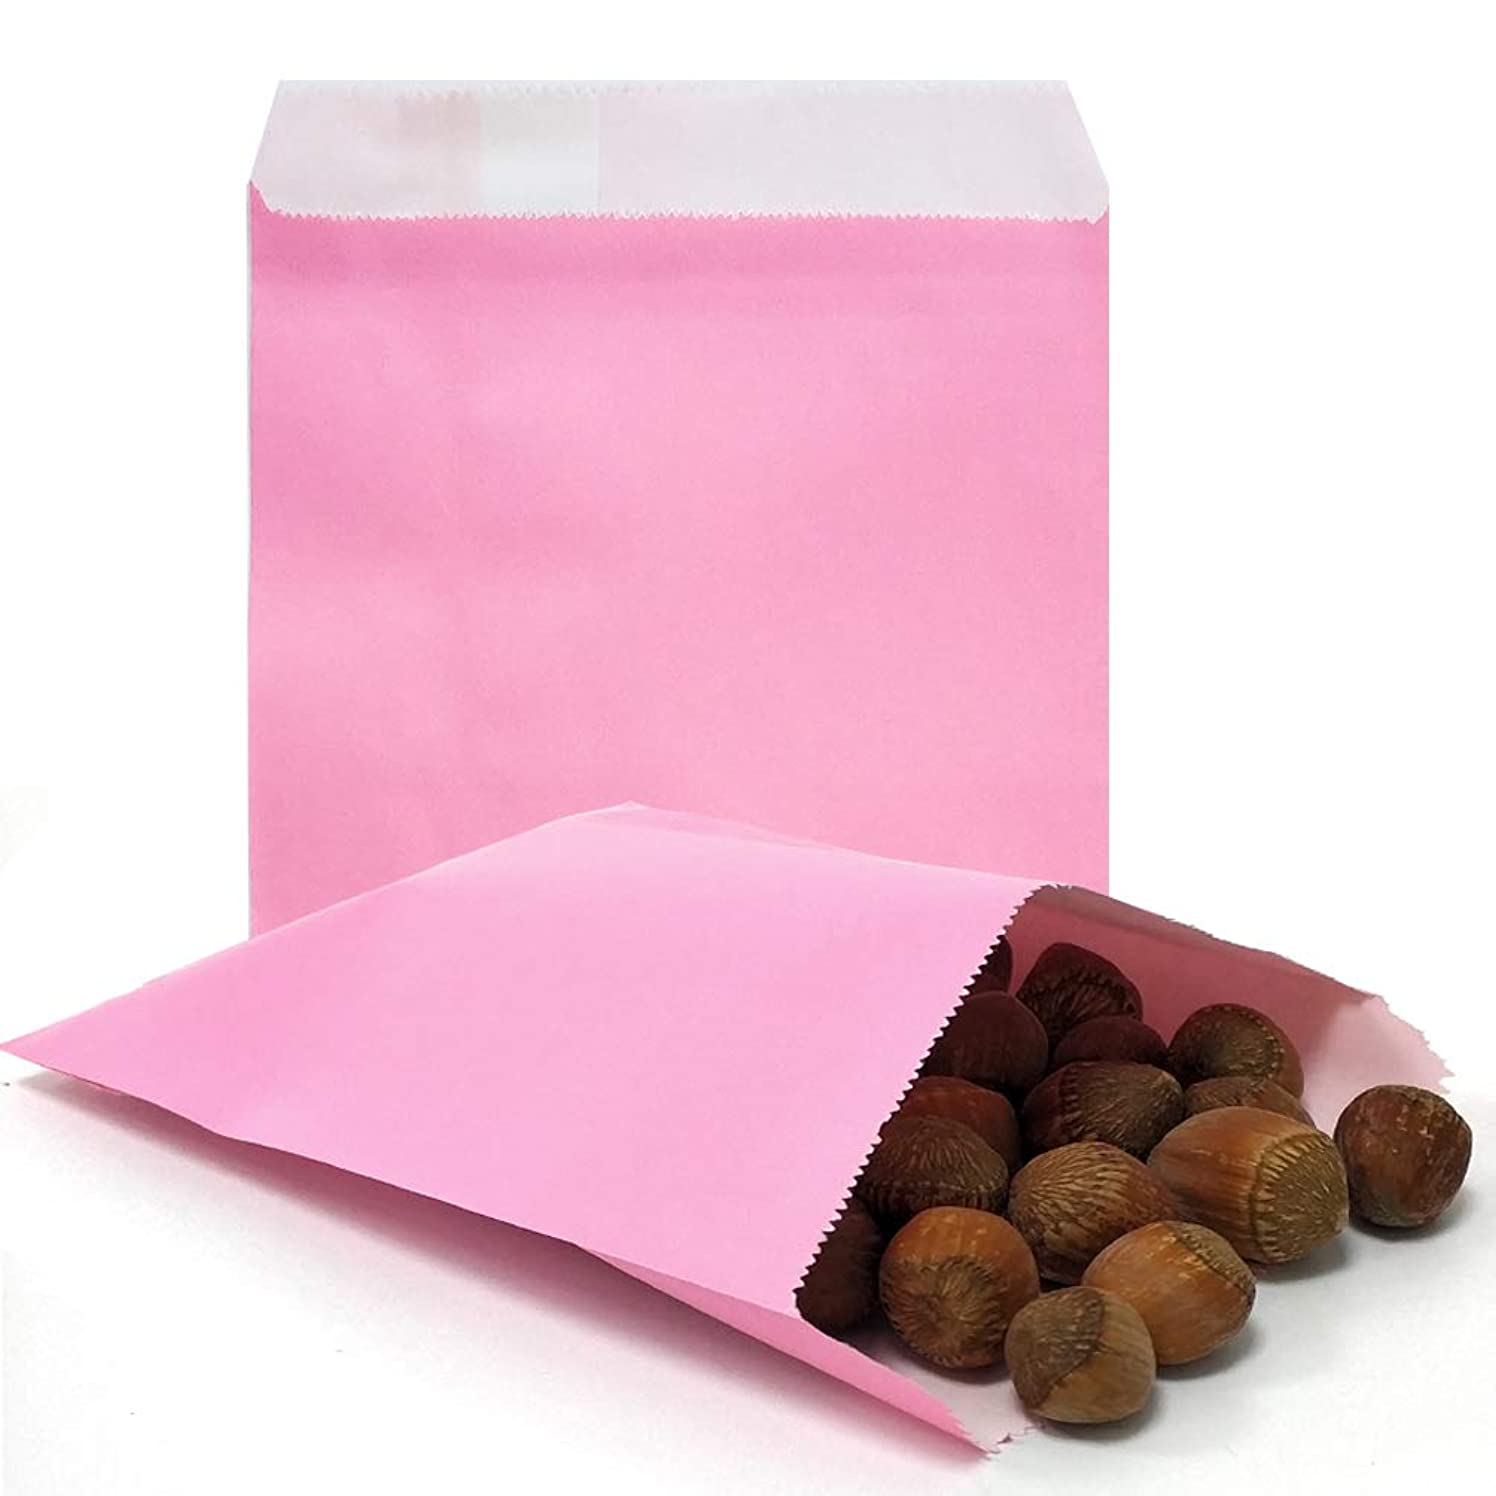 AZOWA 100 CT Small Paper Treat Sacks Pink 5 x 7 Inches Candy Buffet Bags for Party